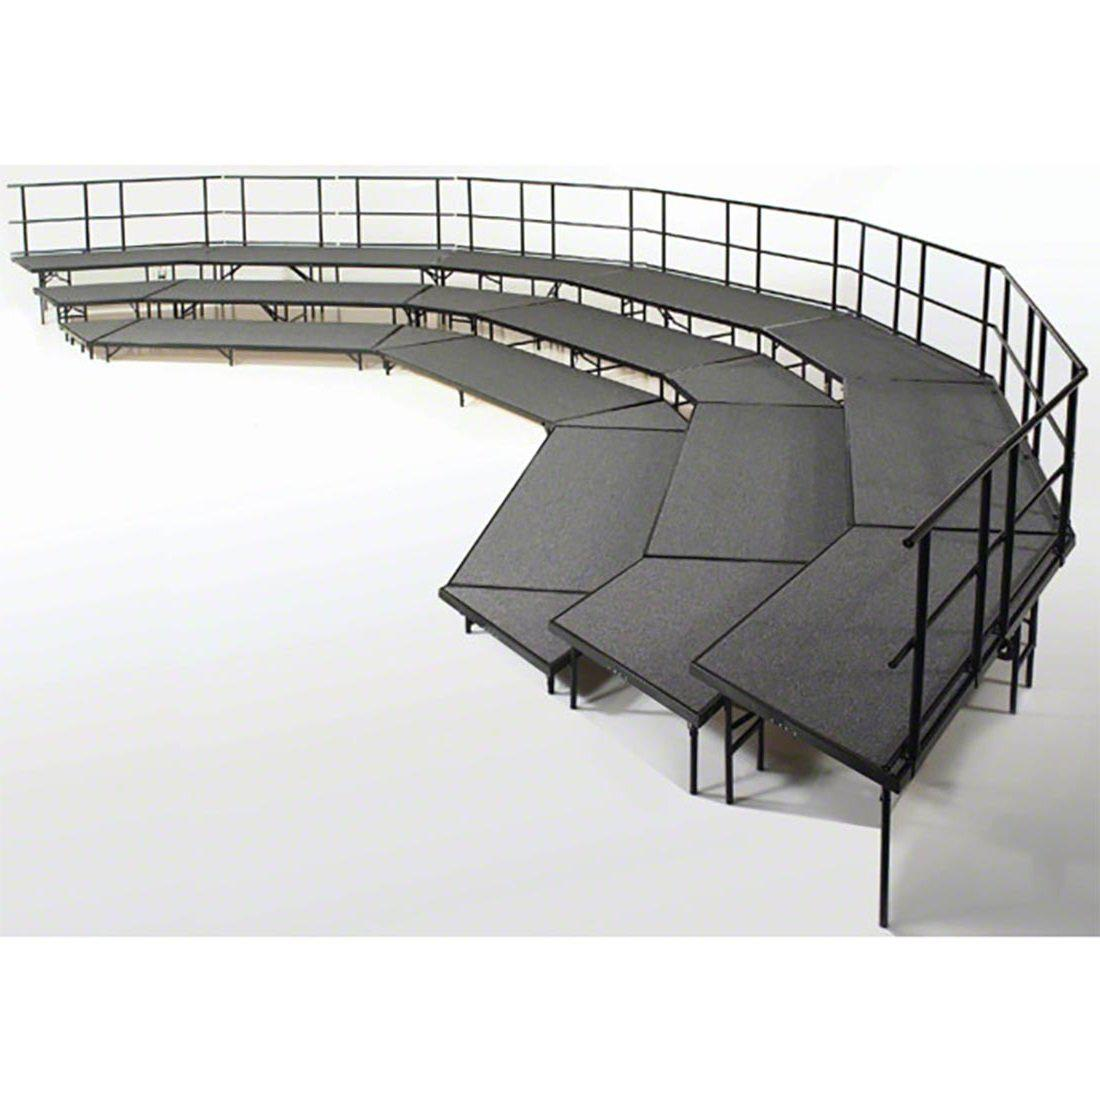 NPS® Seated Choral Riser Configuration, 3 Level